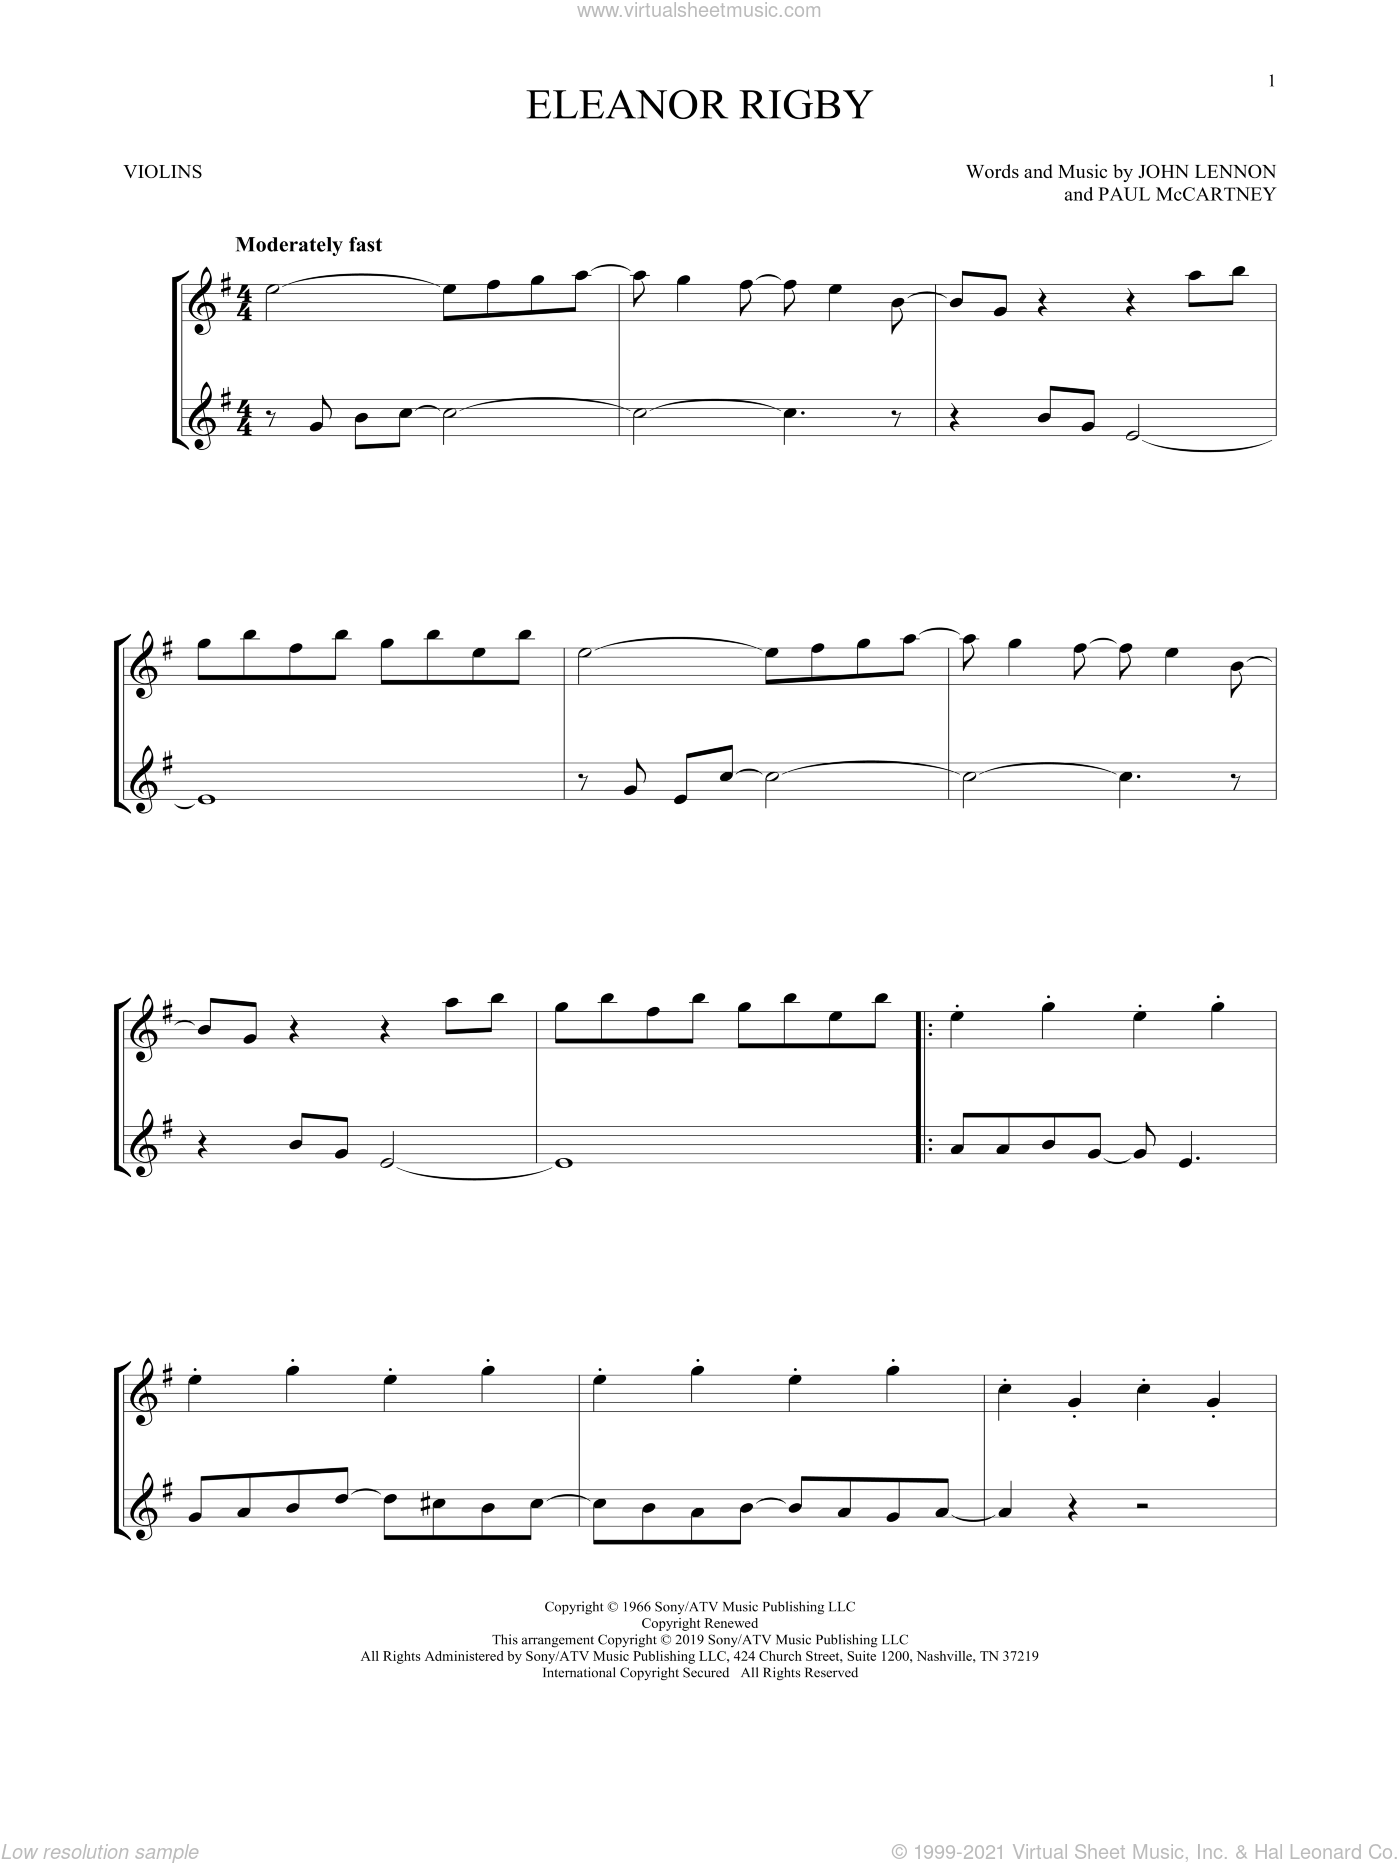 Eleanor Rigby sheet music for two violins (duets, violin duets) by The Beatles, John Lennon and Paul McCartney, intermediate skill level